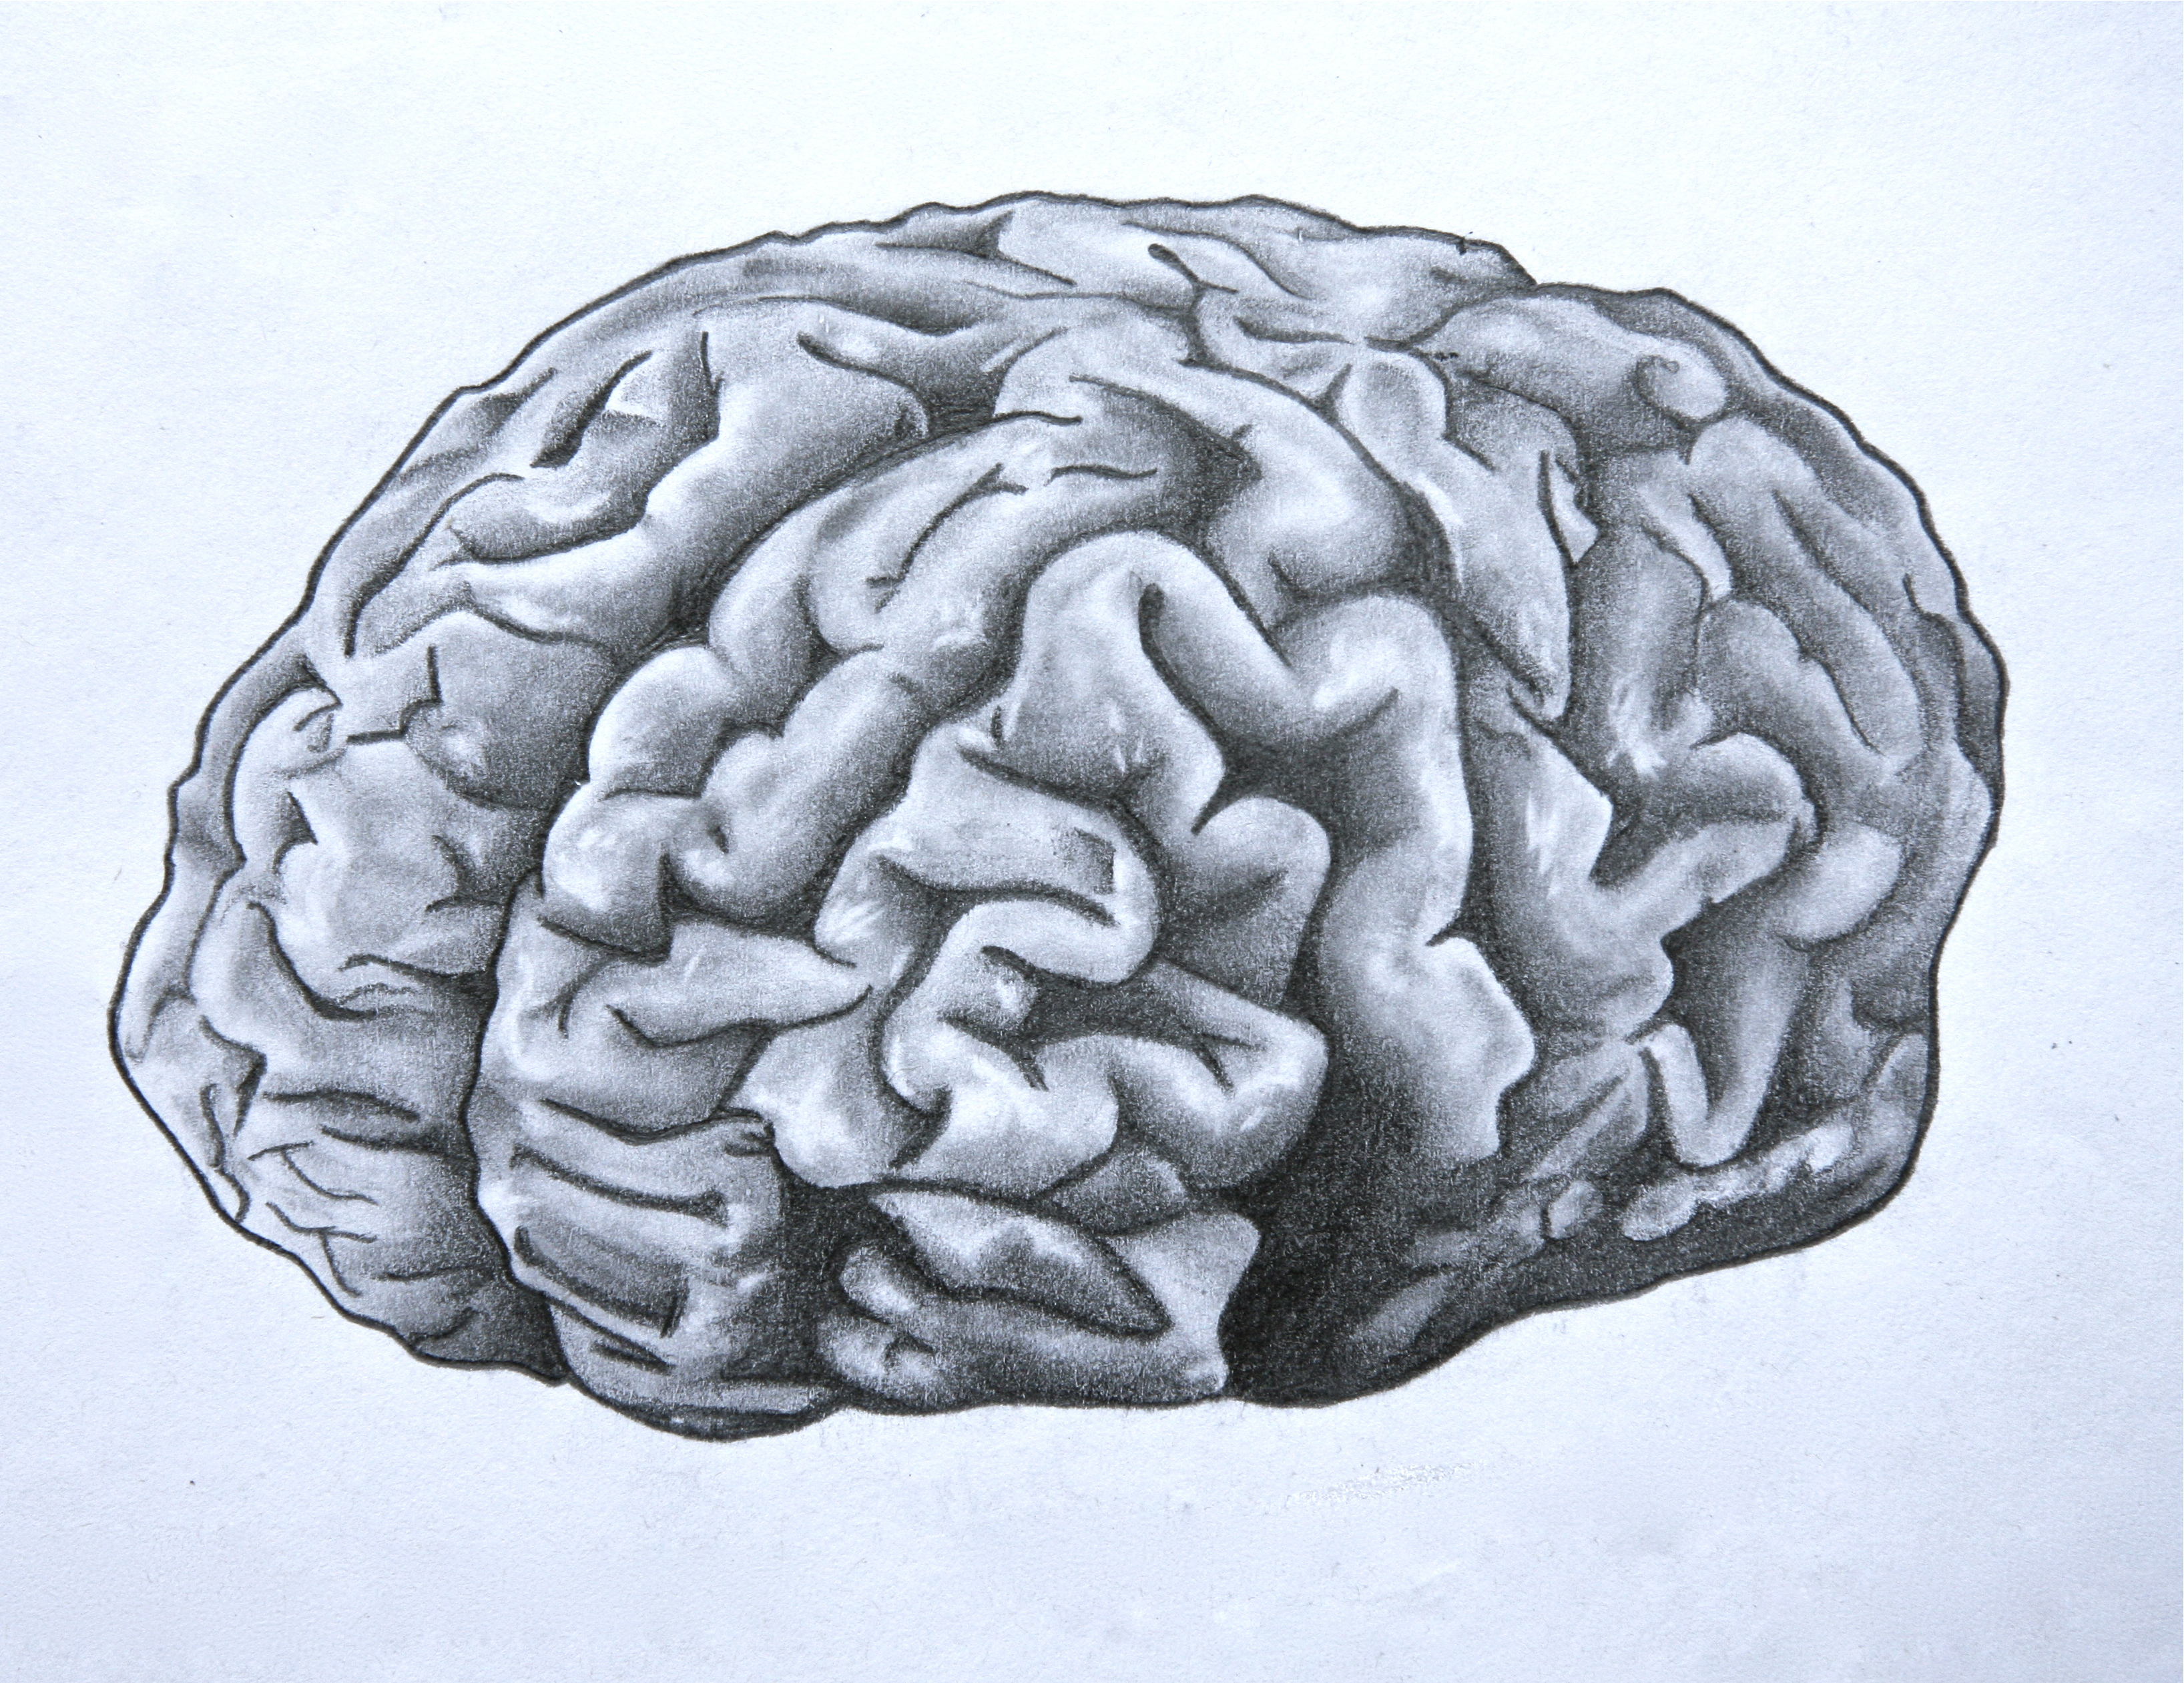 3272x2521 Simple Labeled Pencil Sketch Diagram Of Human Brain Drawn Brain